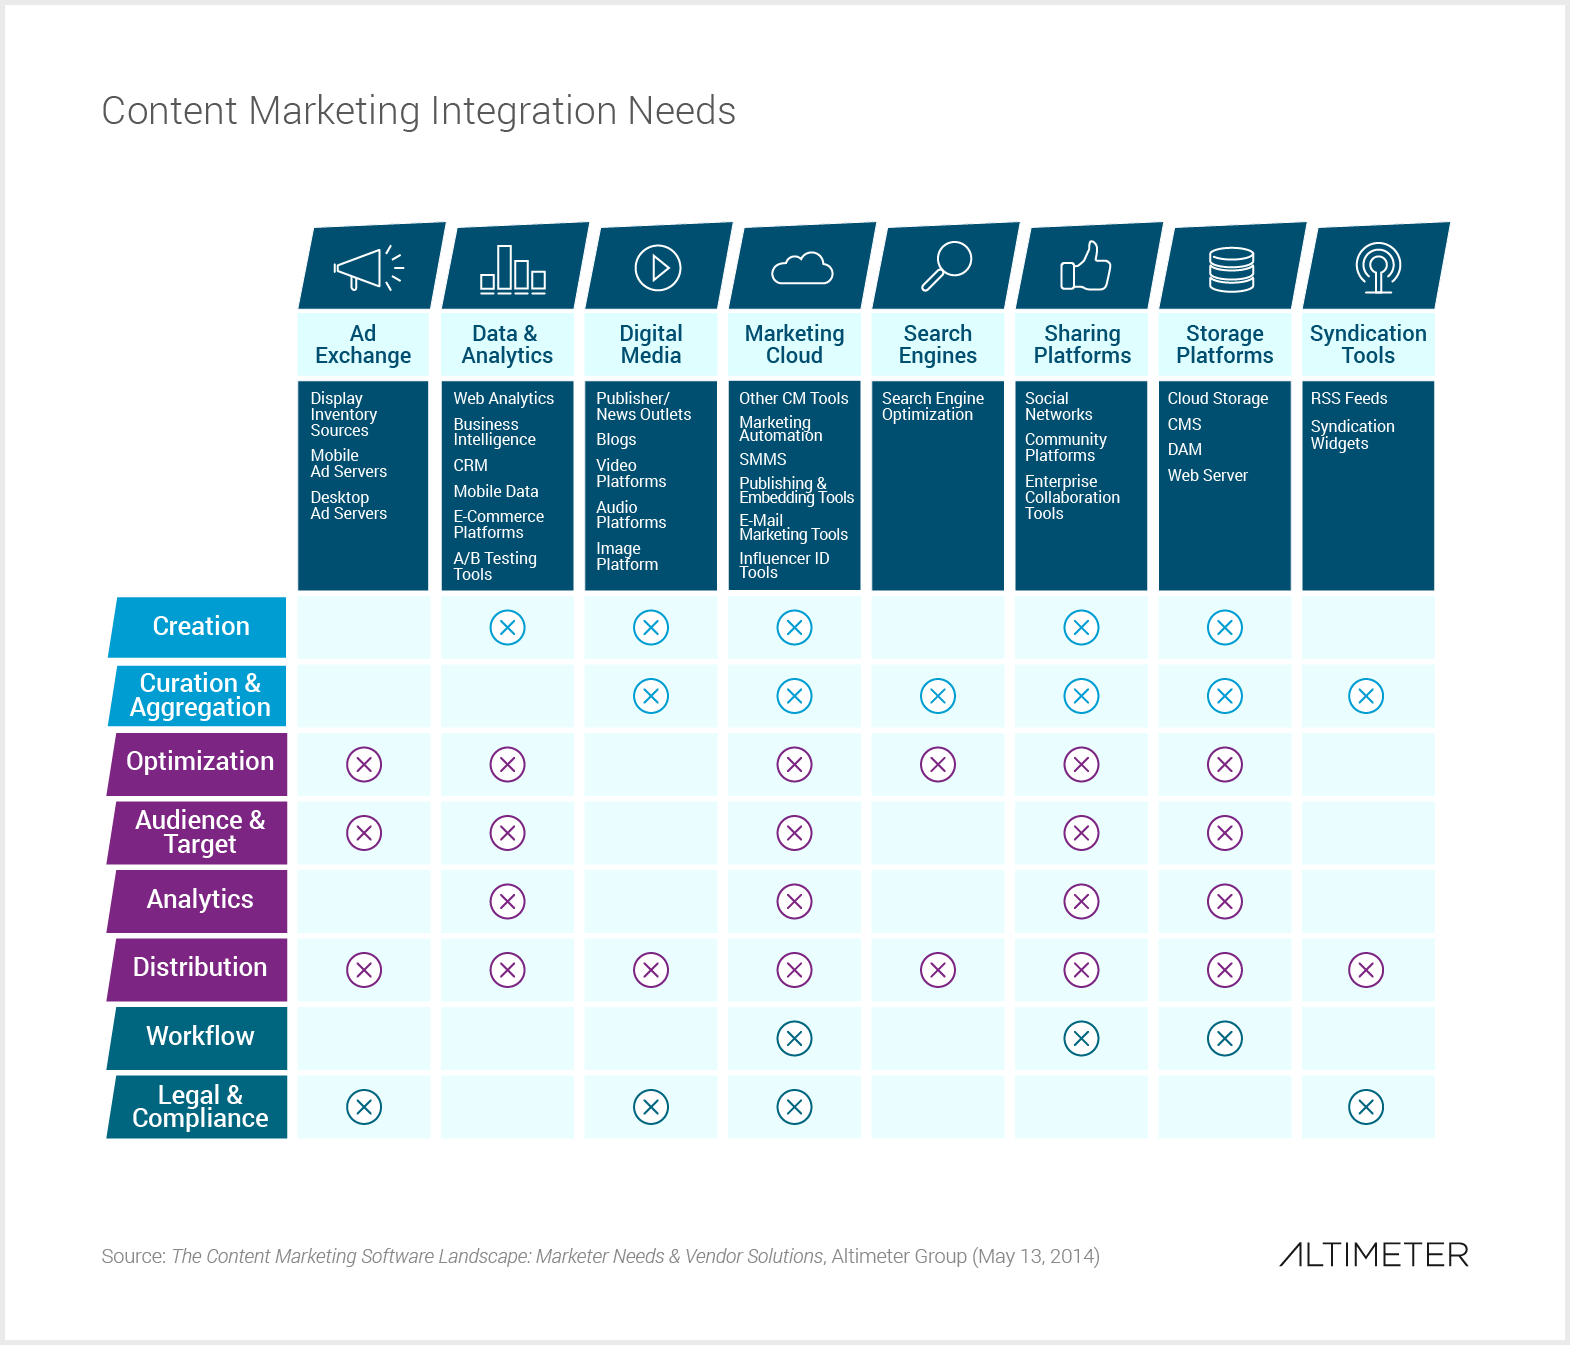 Content Marketing Software Integration Needs